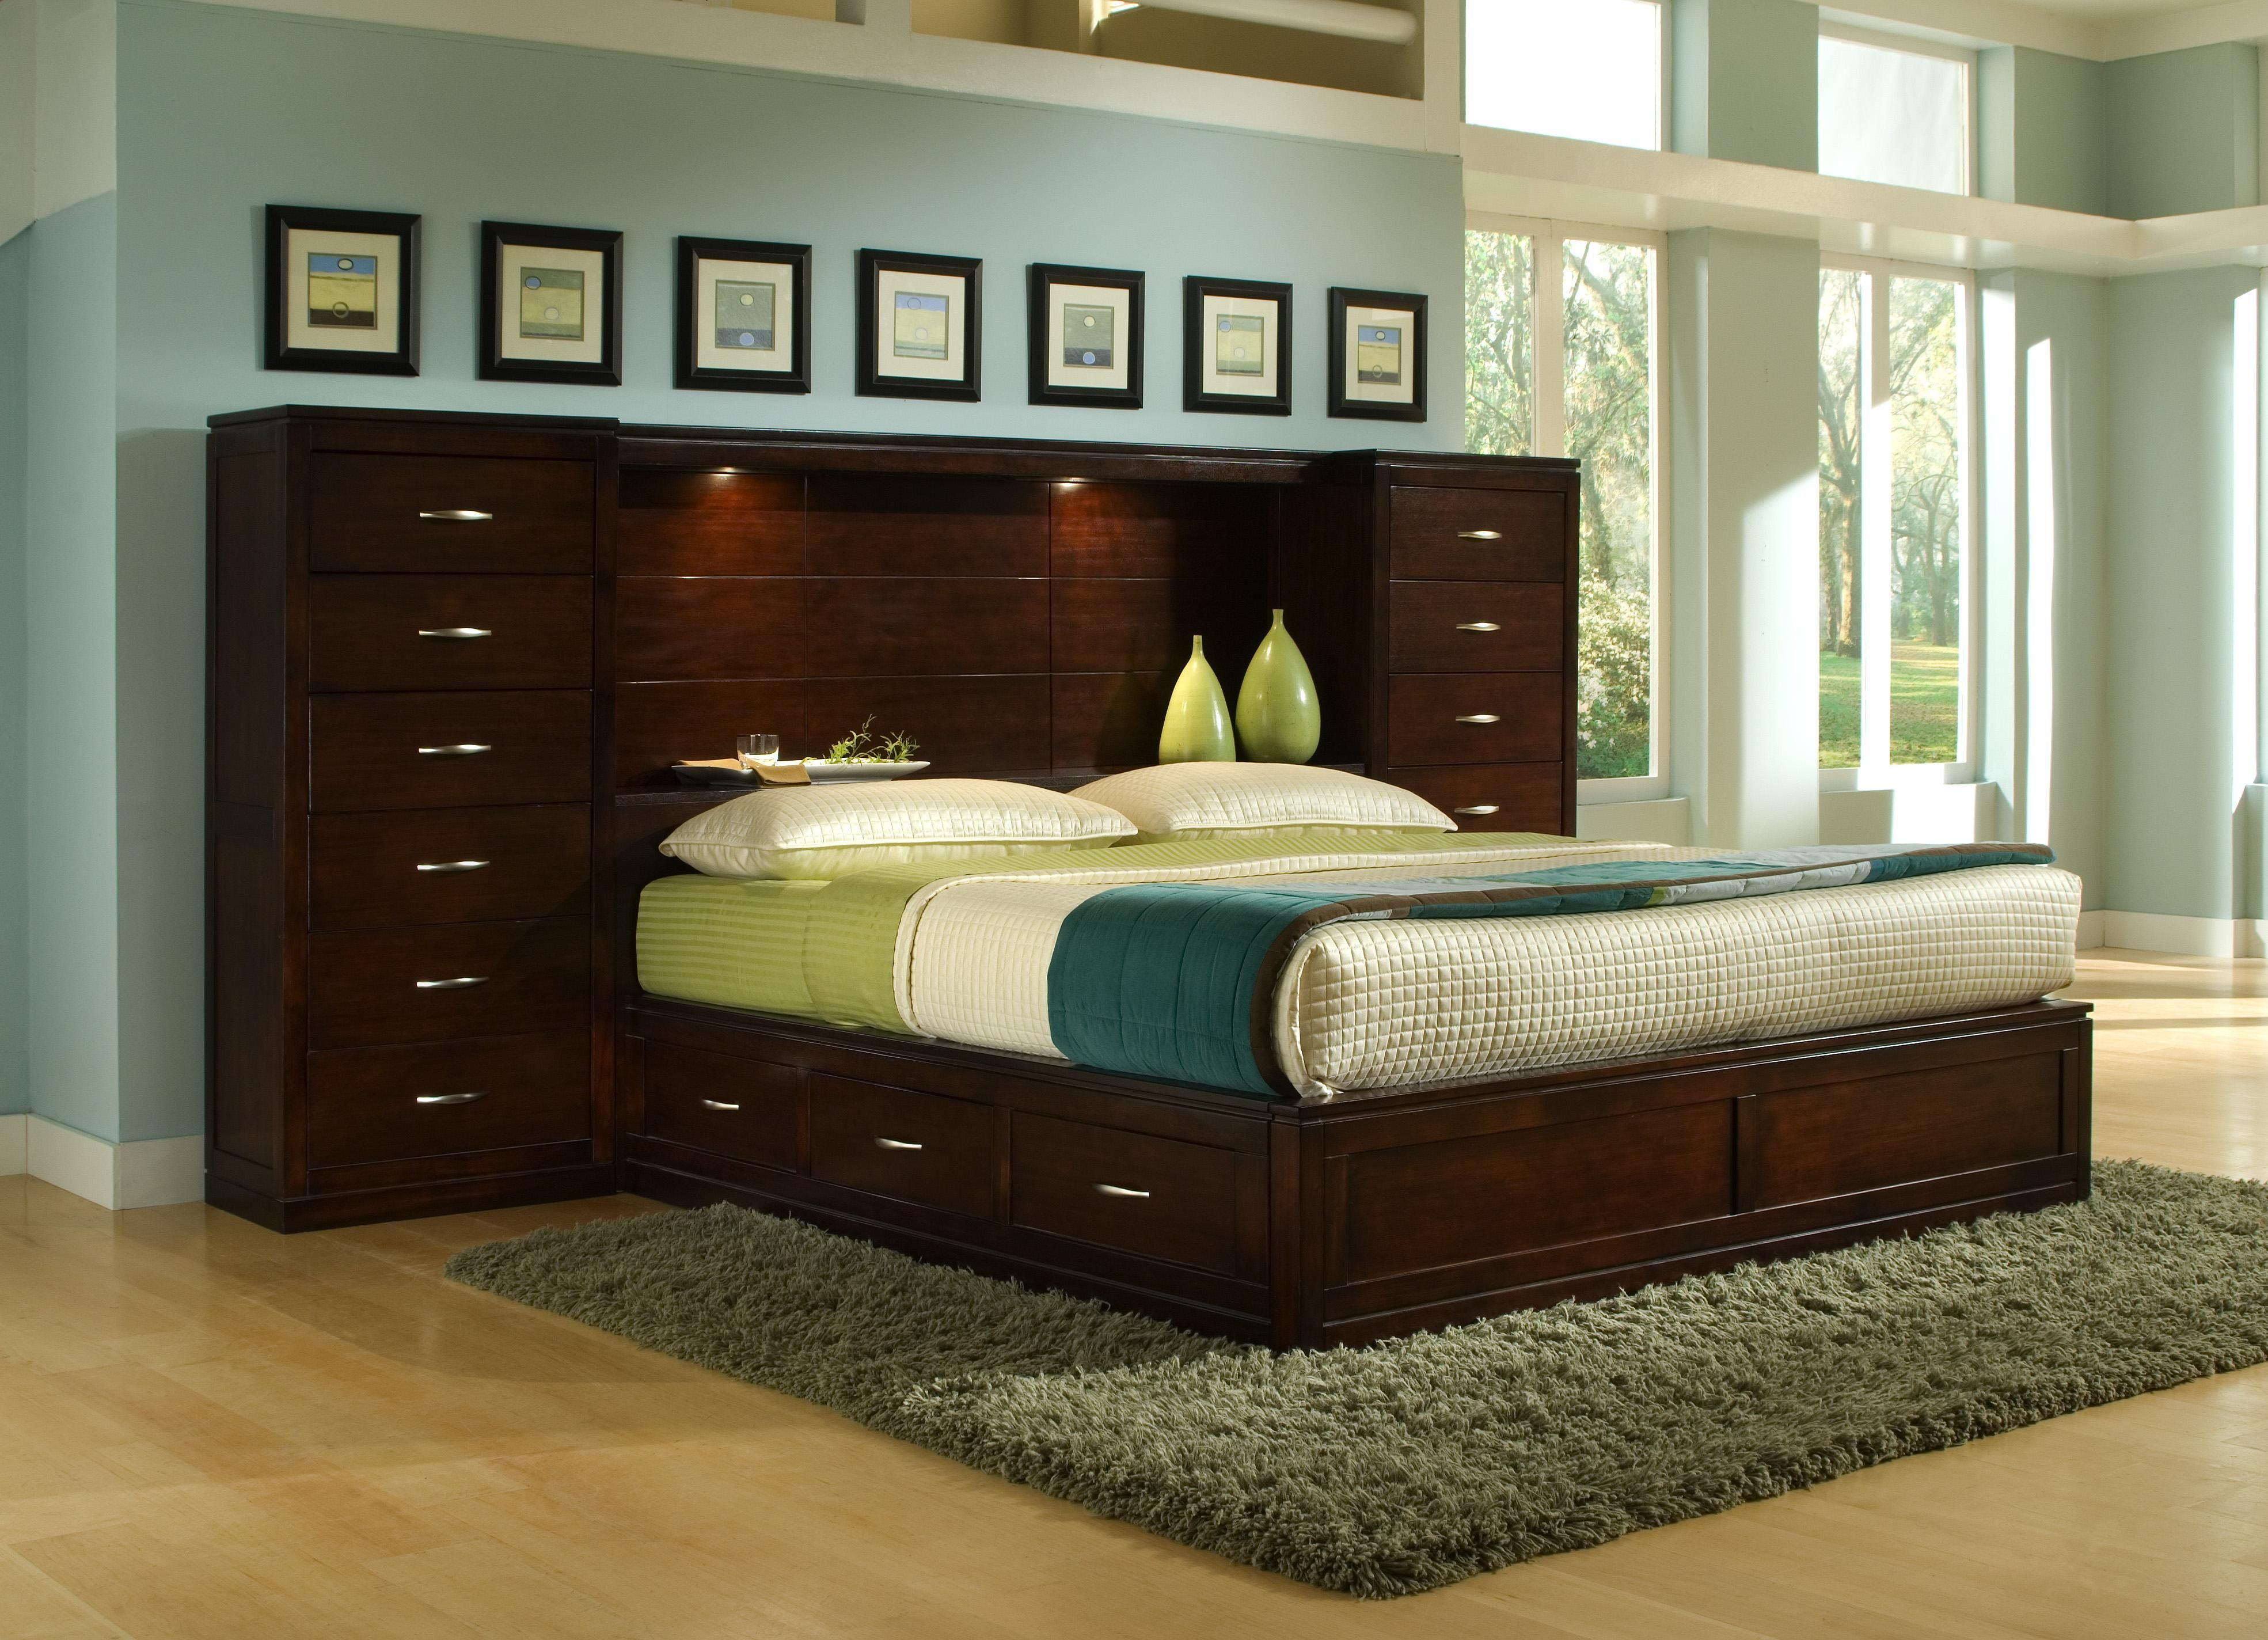 Perimeter Place Bookcase King Bed Pier Group By Bk Home